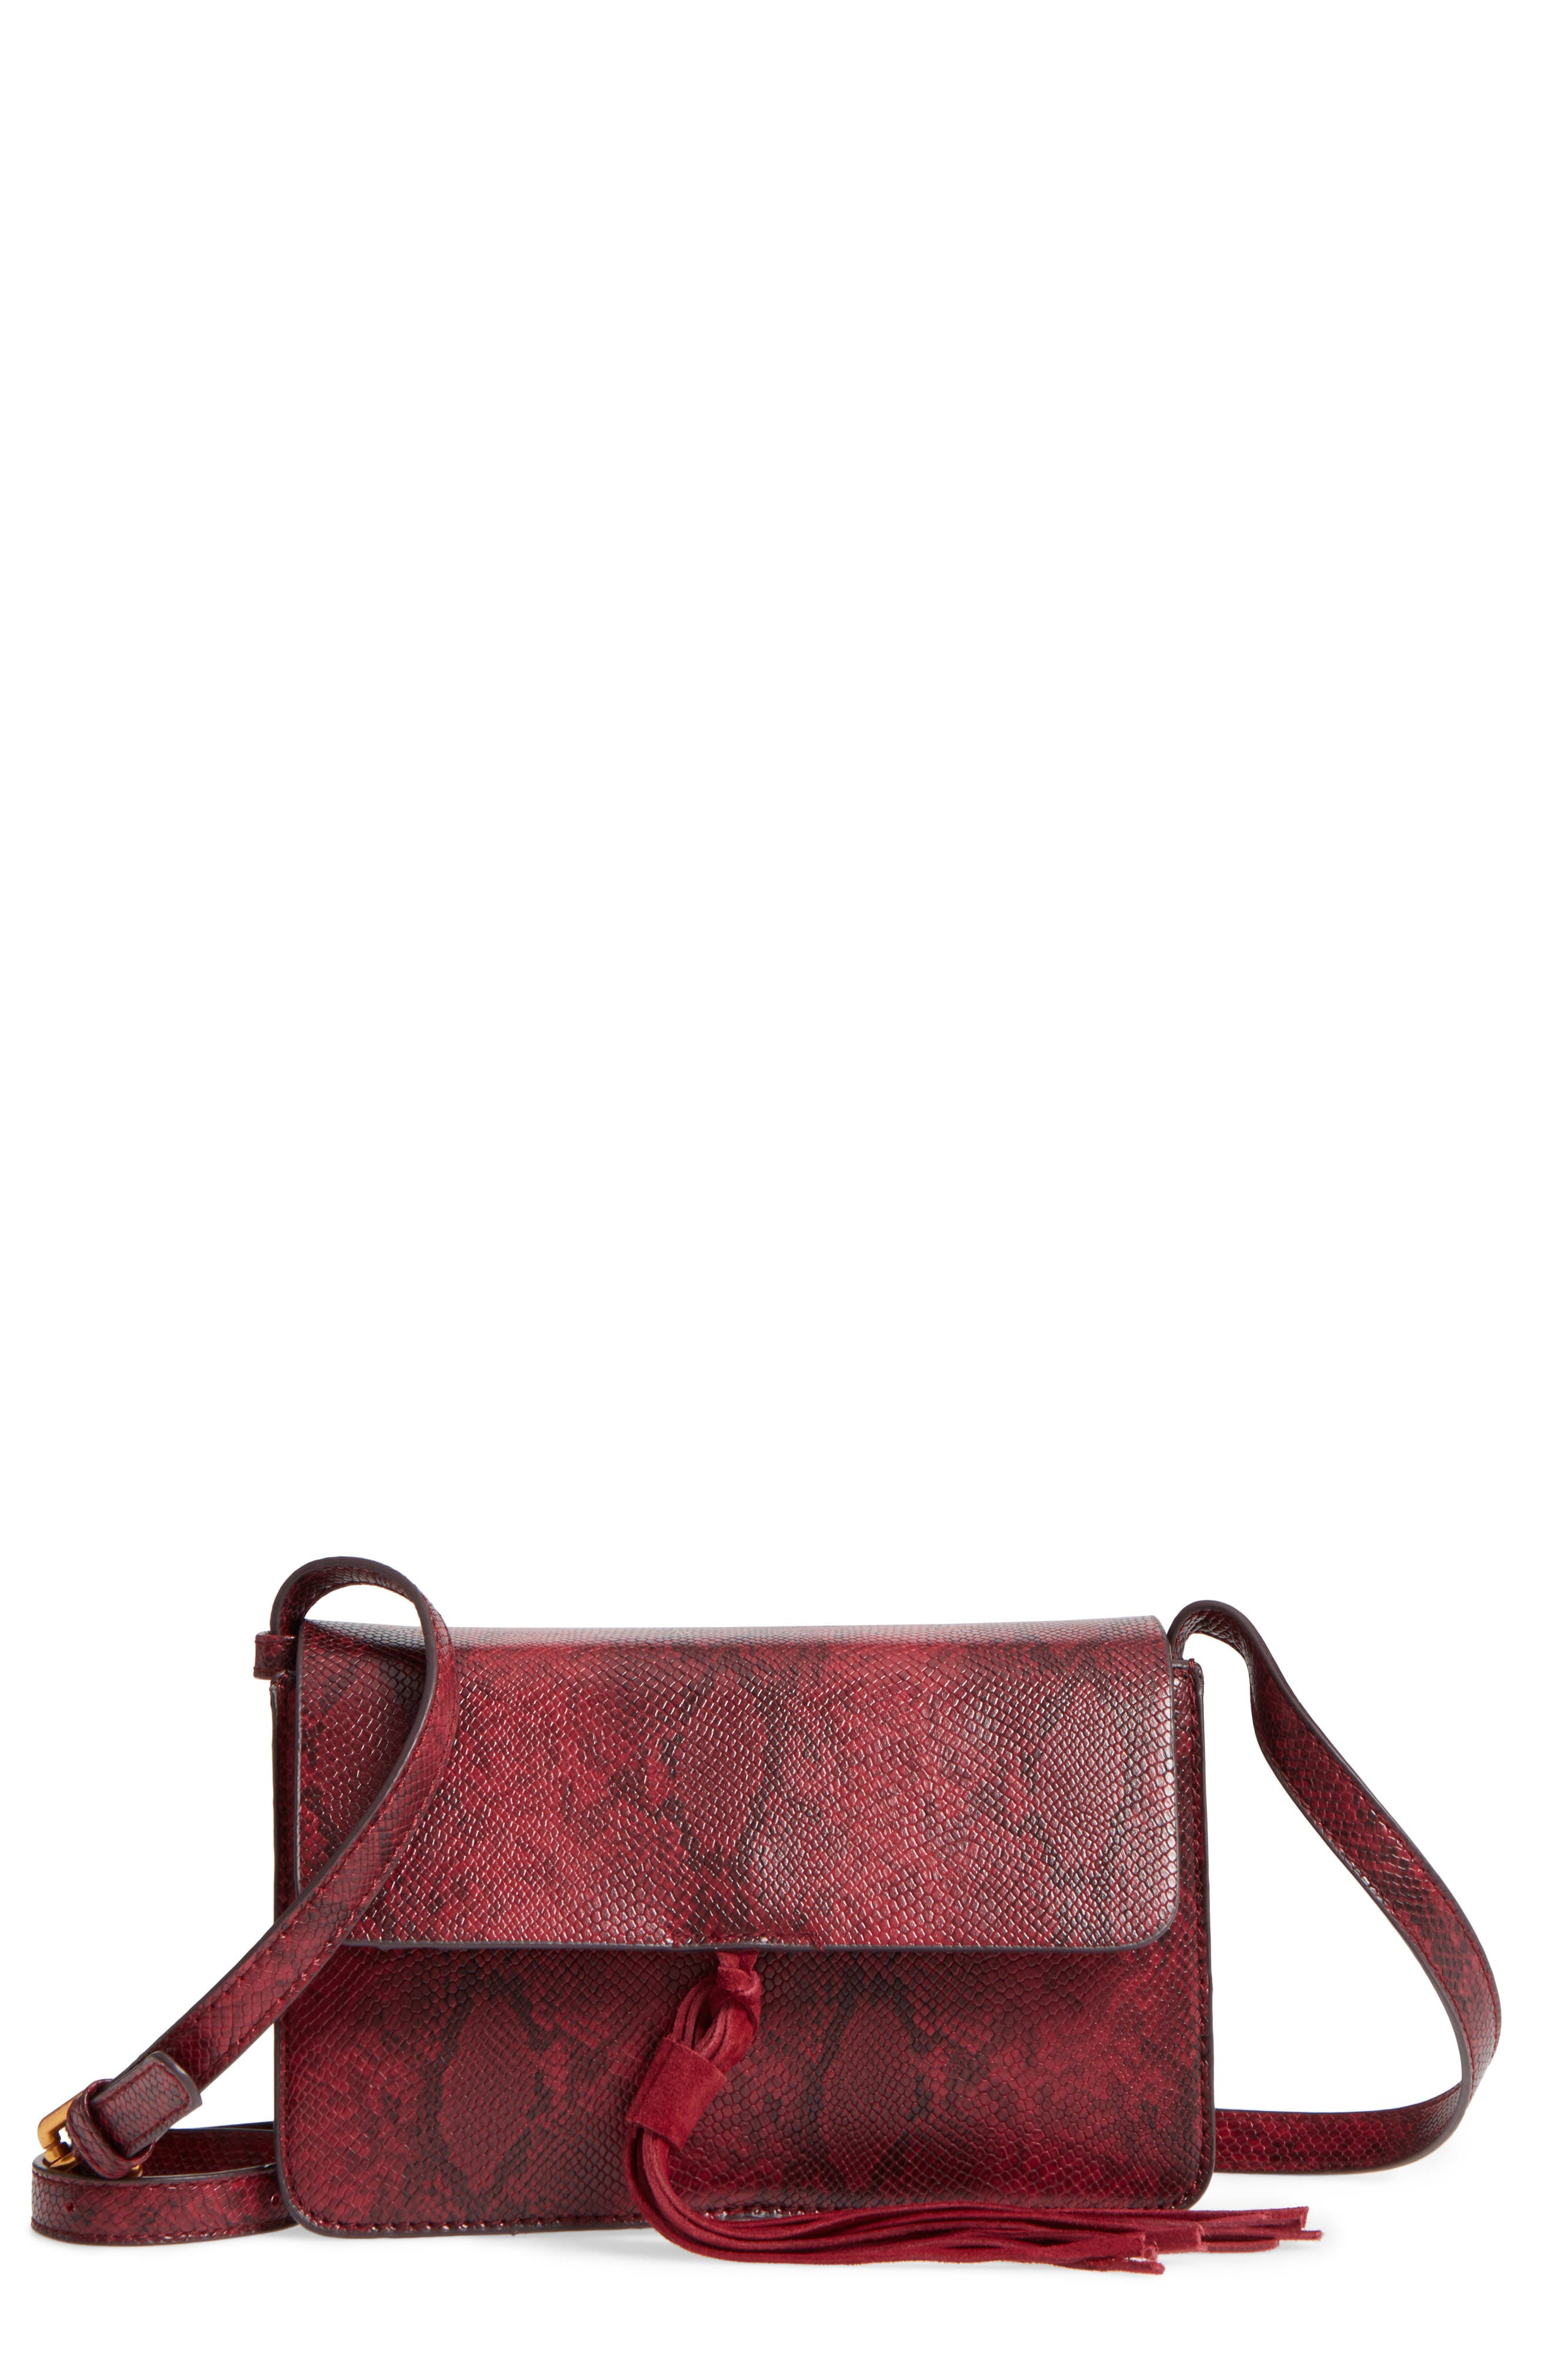 Alternate Image 1 Selected - Street Level Snake Embossed Faux Leather Crossbody Bag